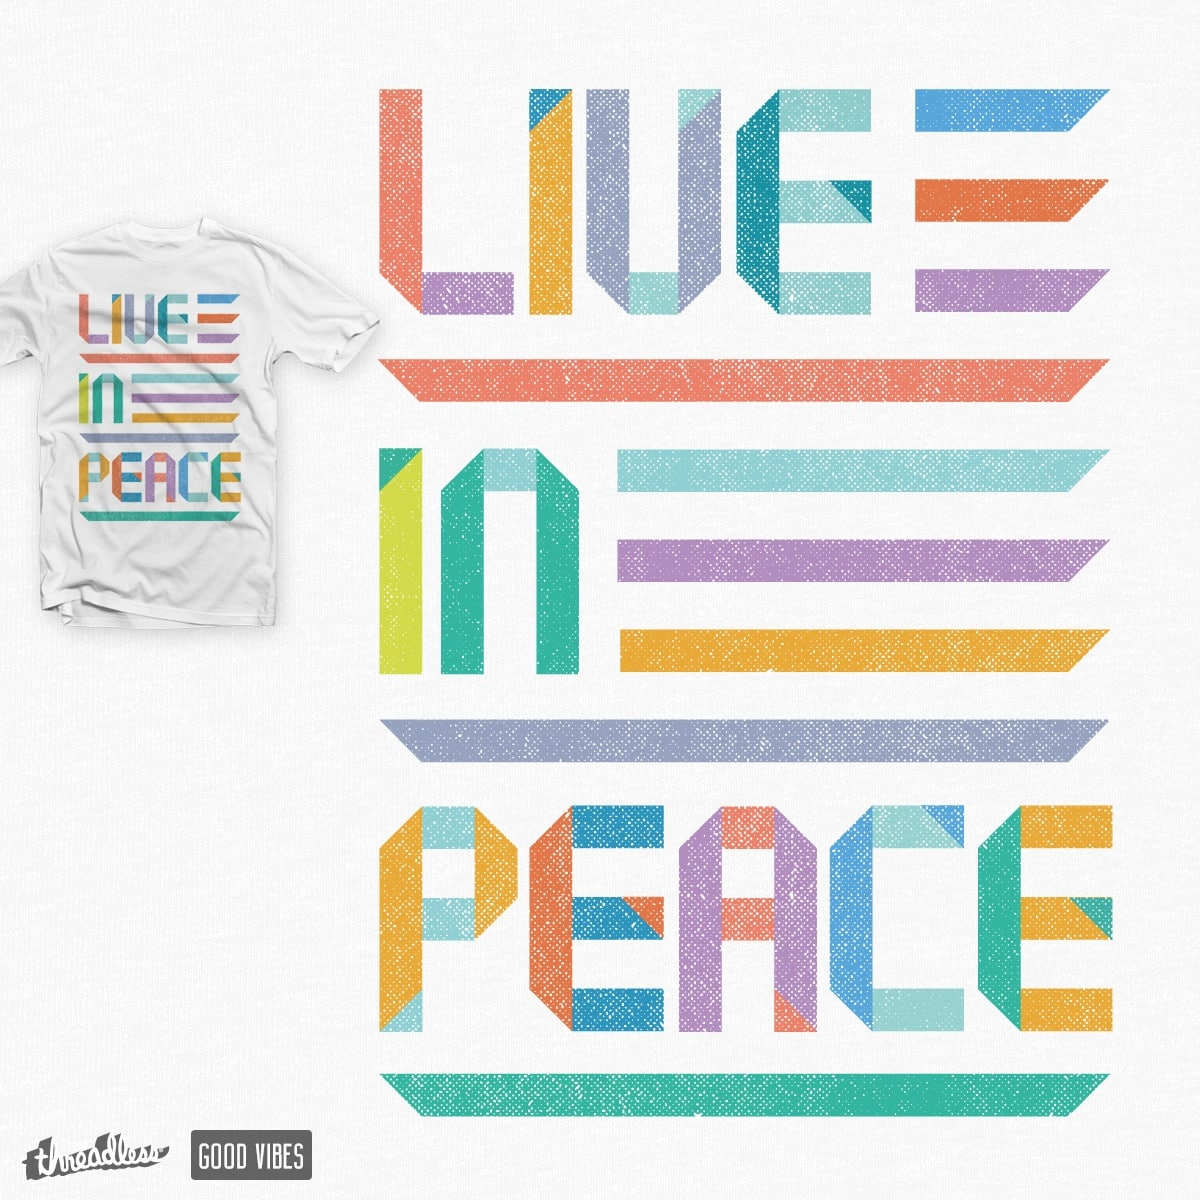 Live In Peace by ThePaperCrane on Threadless